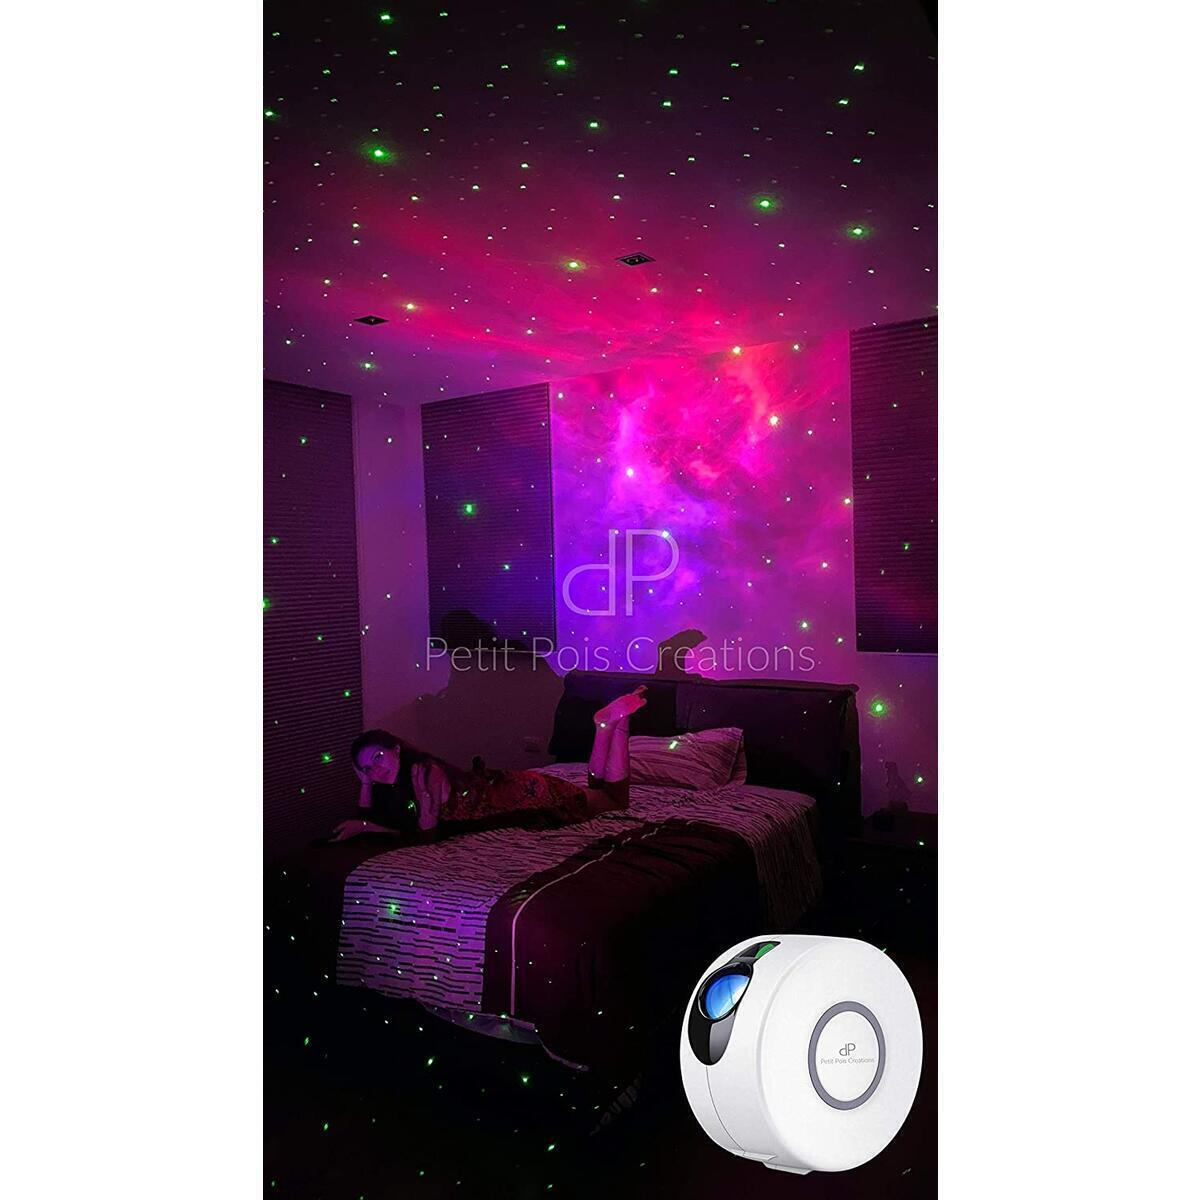 Petit Pois Creations, Star Projector, Galaxy Projector with LED Nebula Cloud for Bedroom, Game Rooms, Home Theatre, Night Lights Projector with Remote Control…